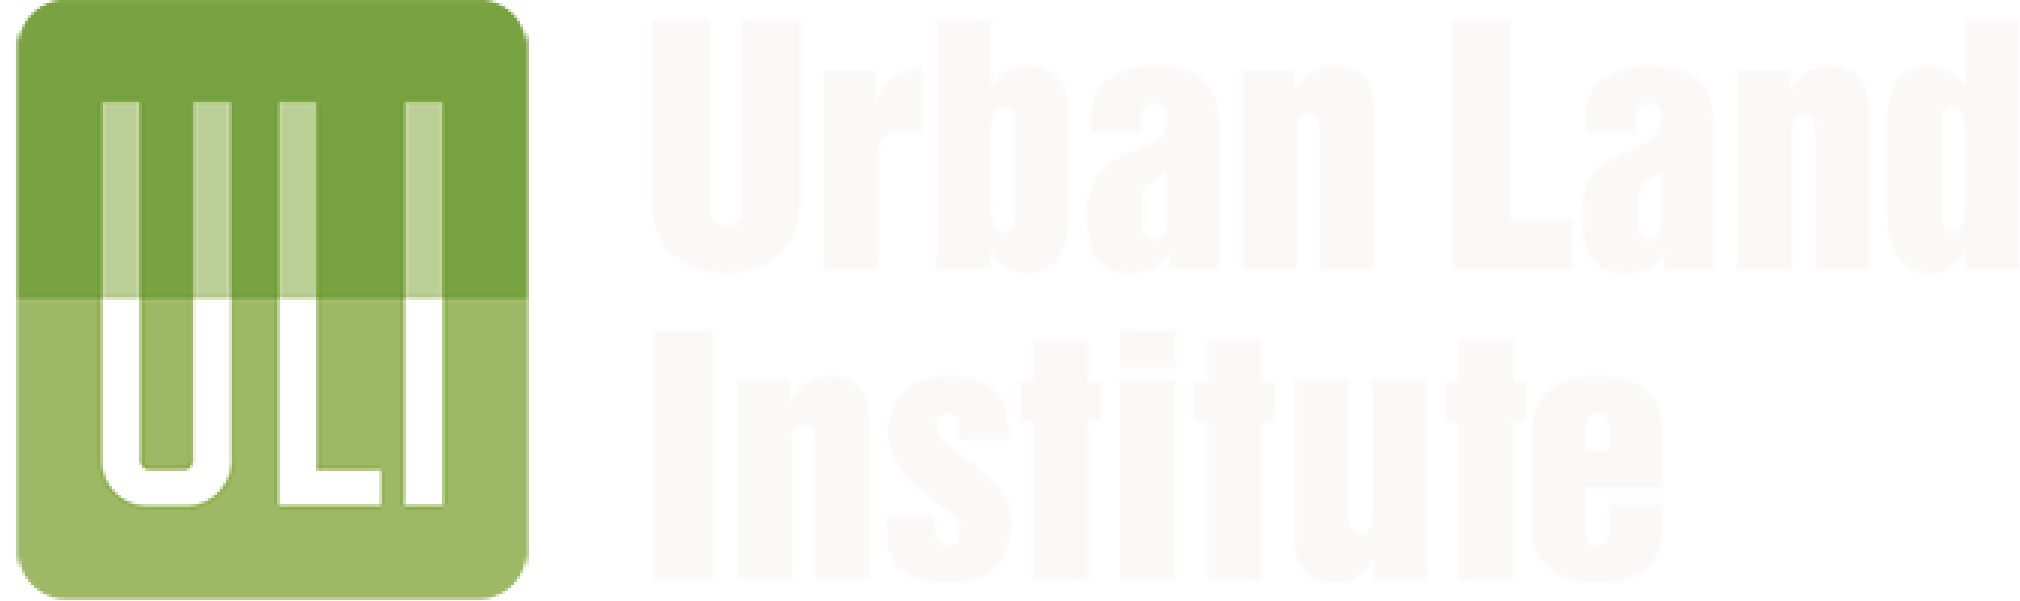 Urban Land Institute - Logo - Inv.png